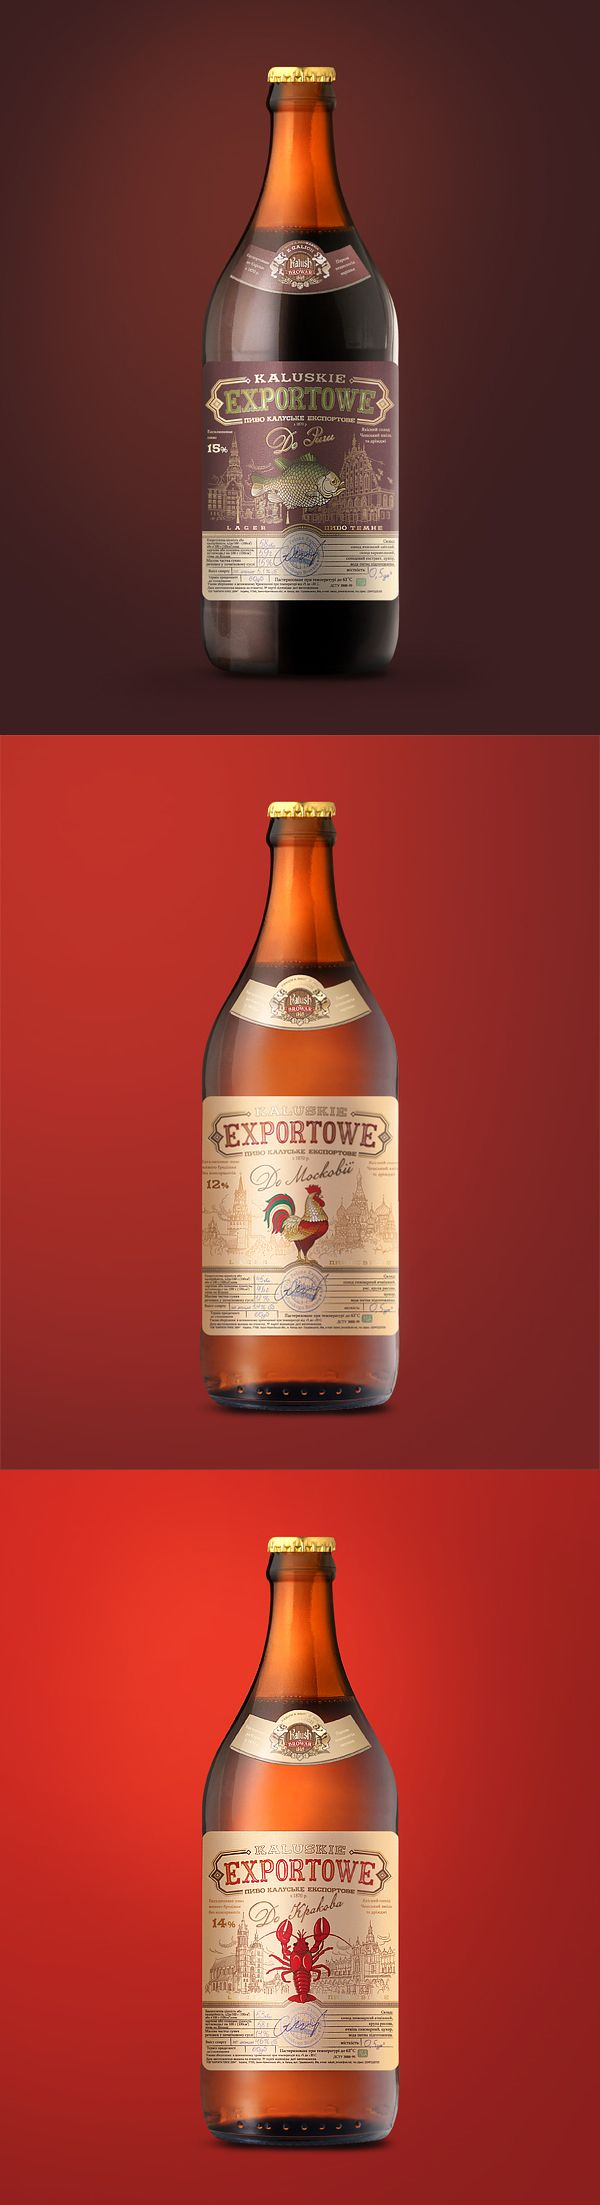 Beer label designs by Yaroslav Shkriblyak, via Behance